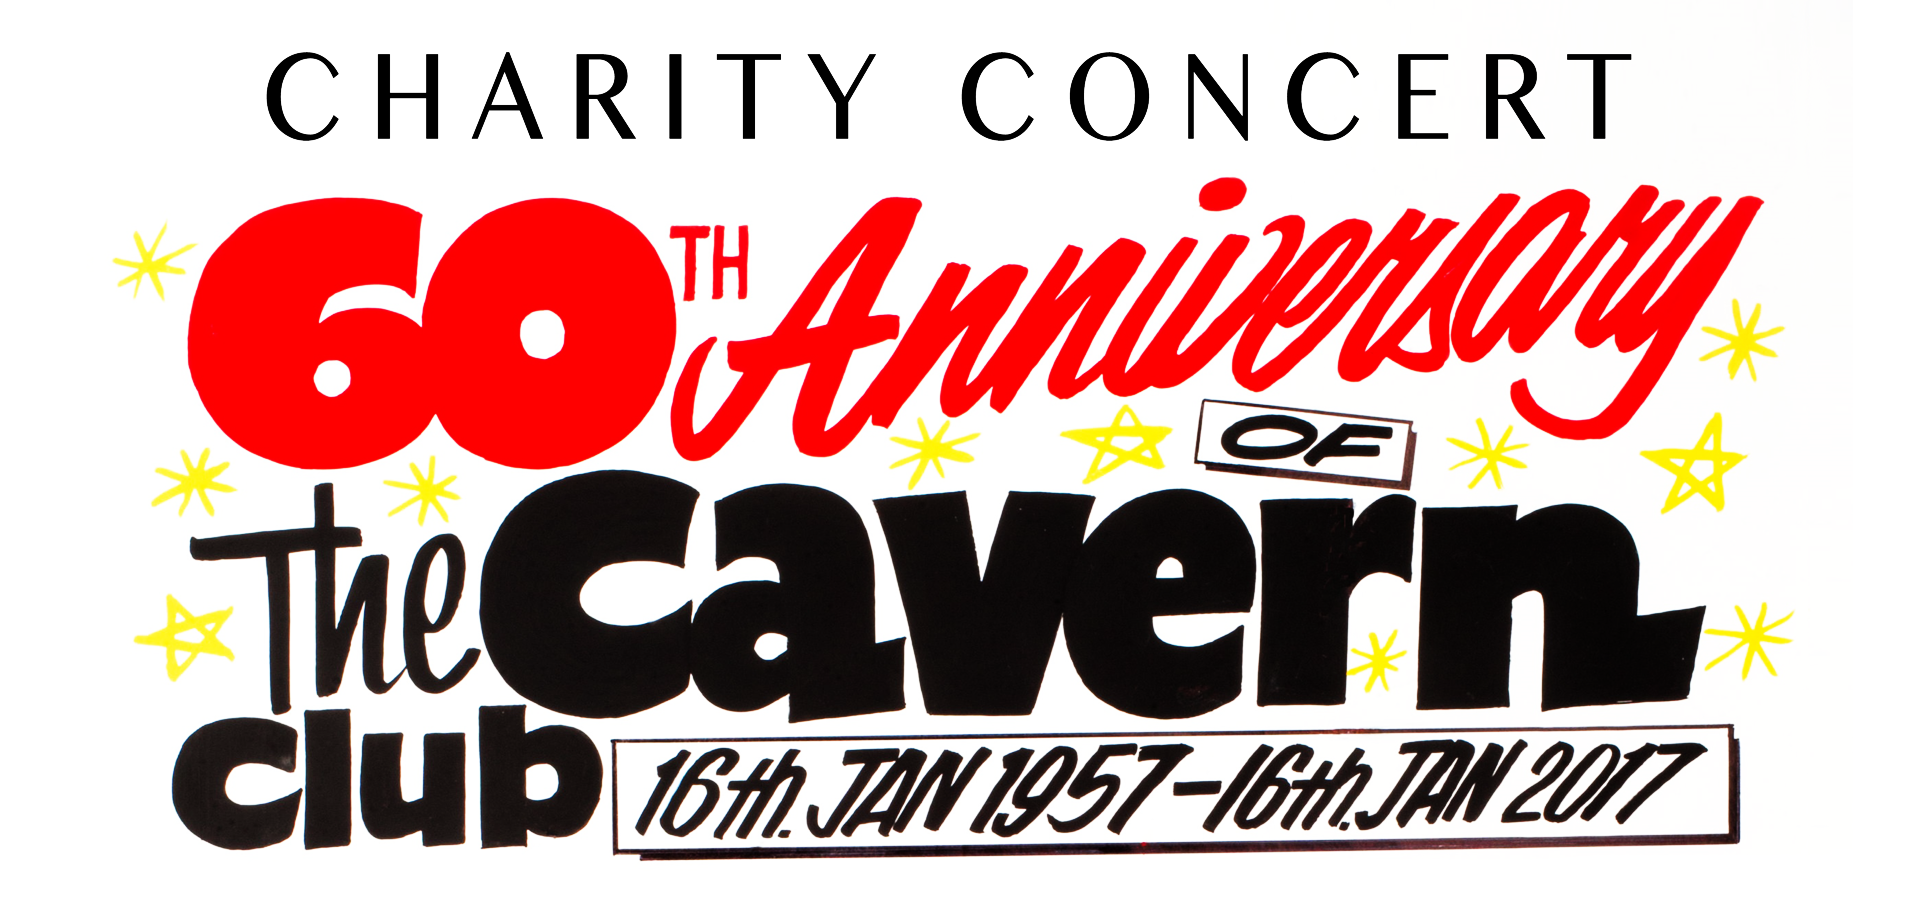 Cavern60: The history of The Cavern